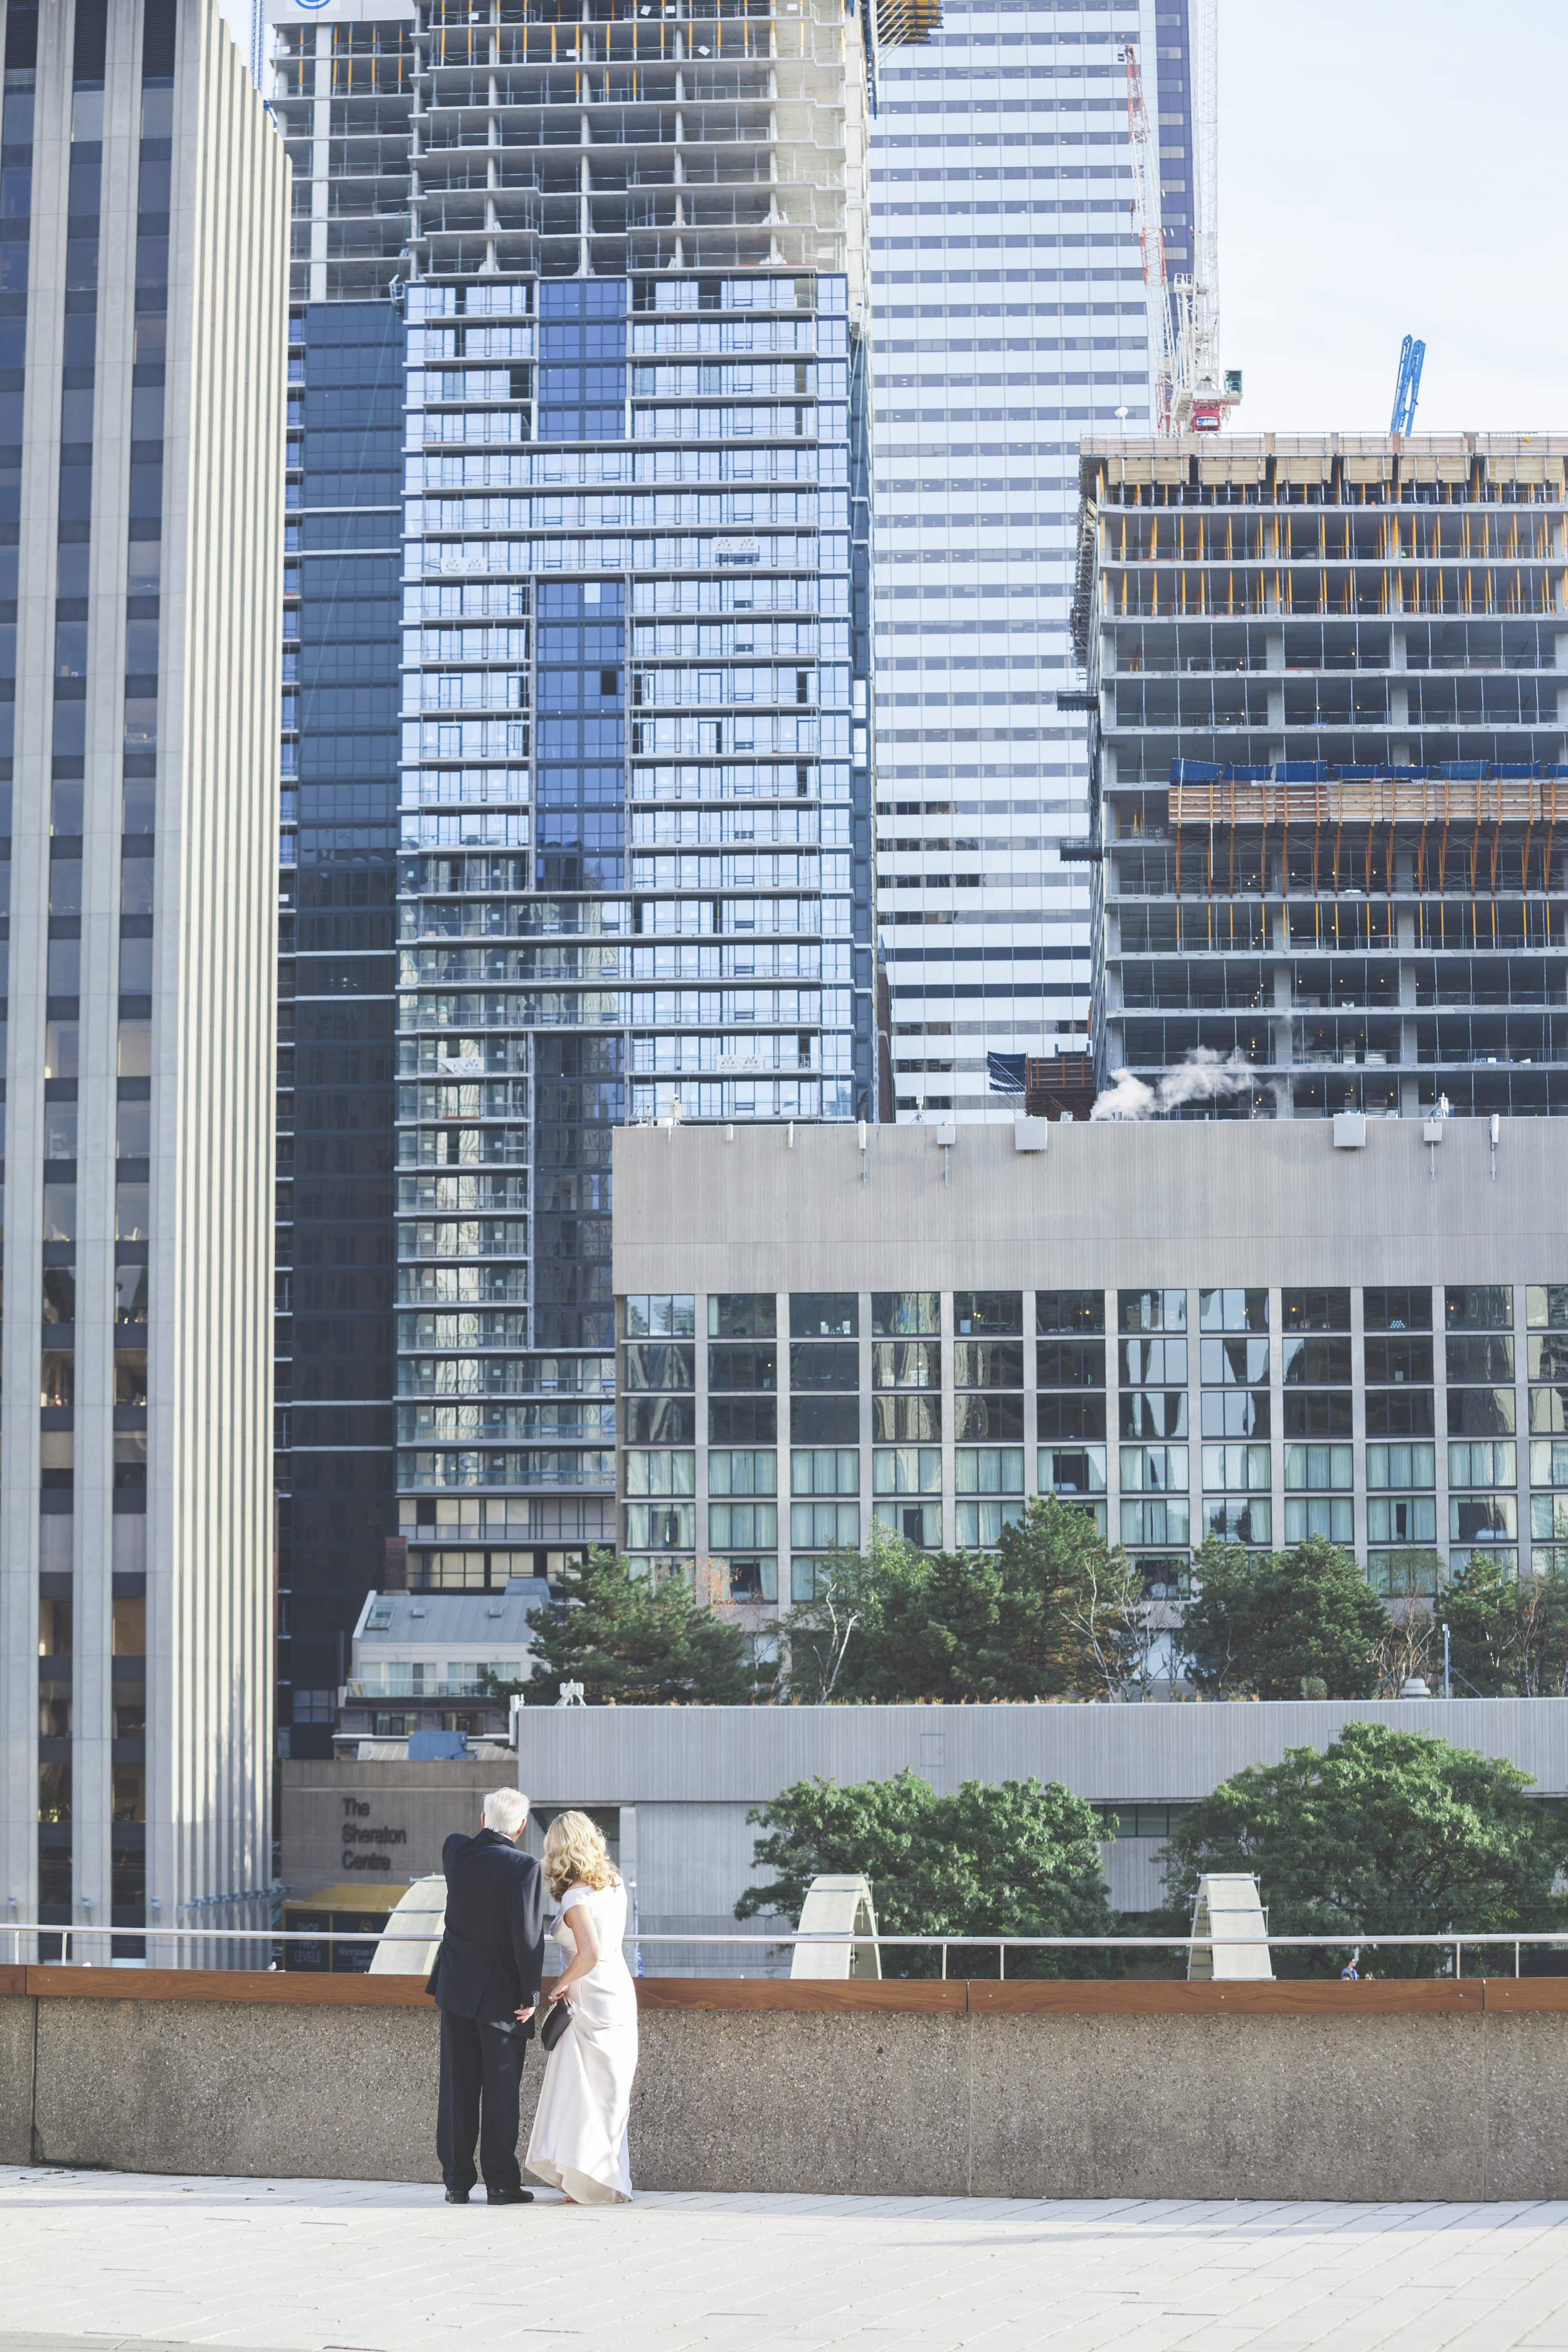 Looking out over Nathan Phillips Square from Toronto City Hall.